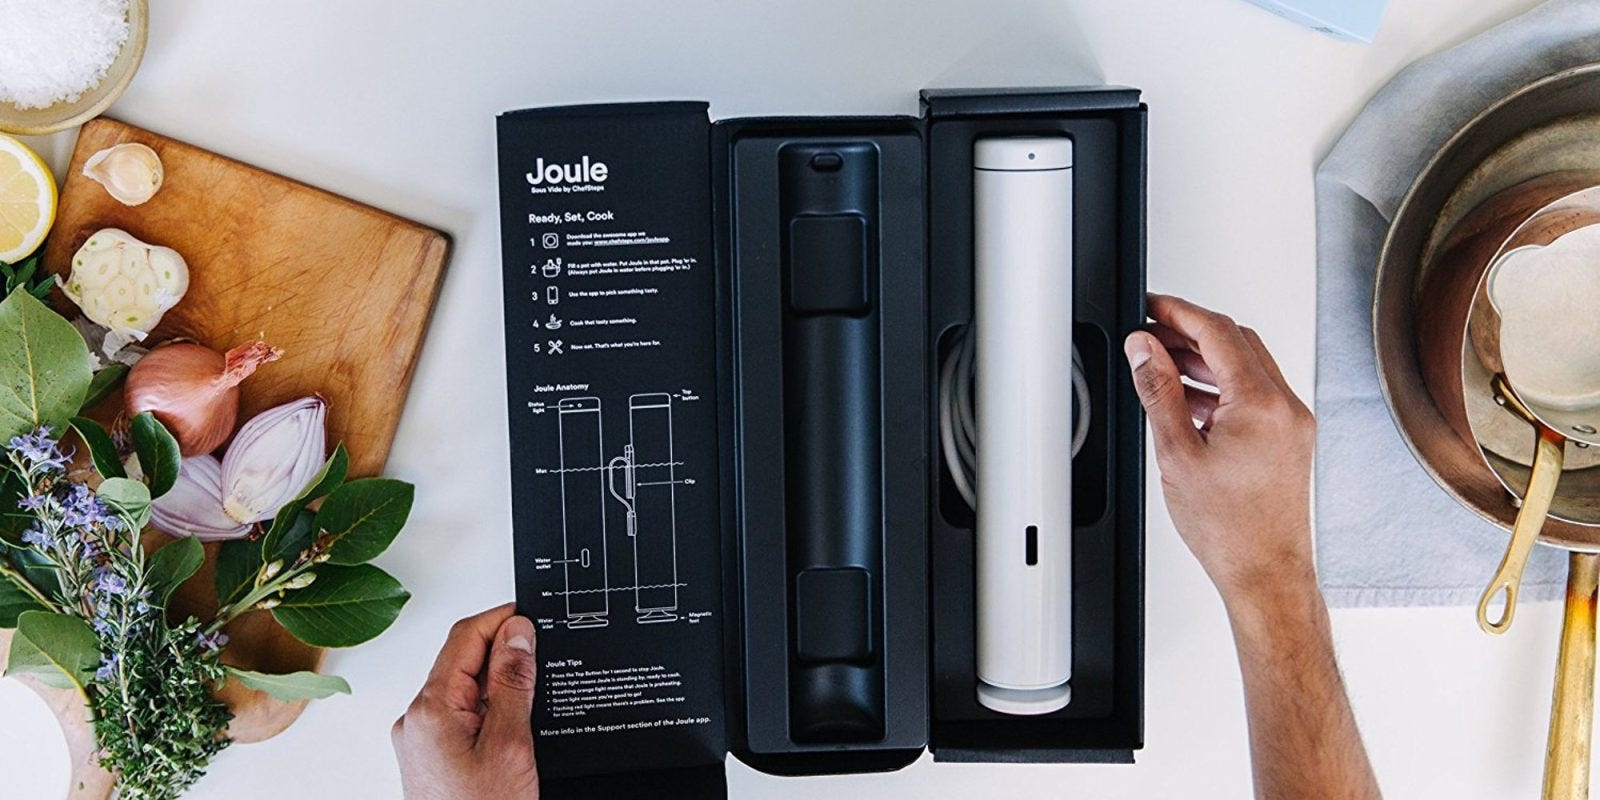 The Joule's packaging, open to display the Joule, on a work surface